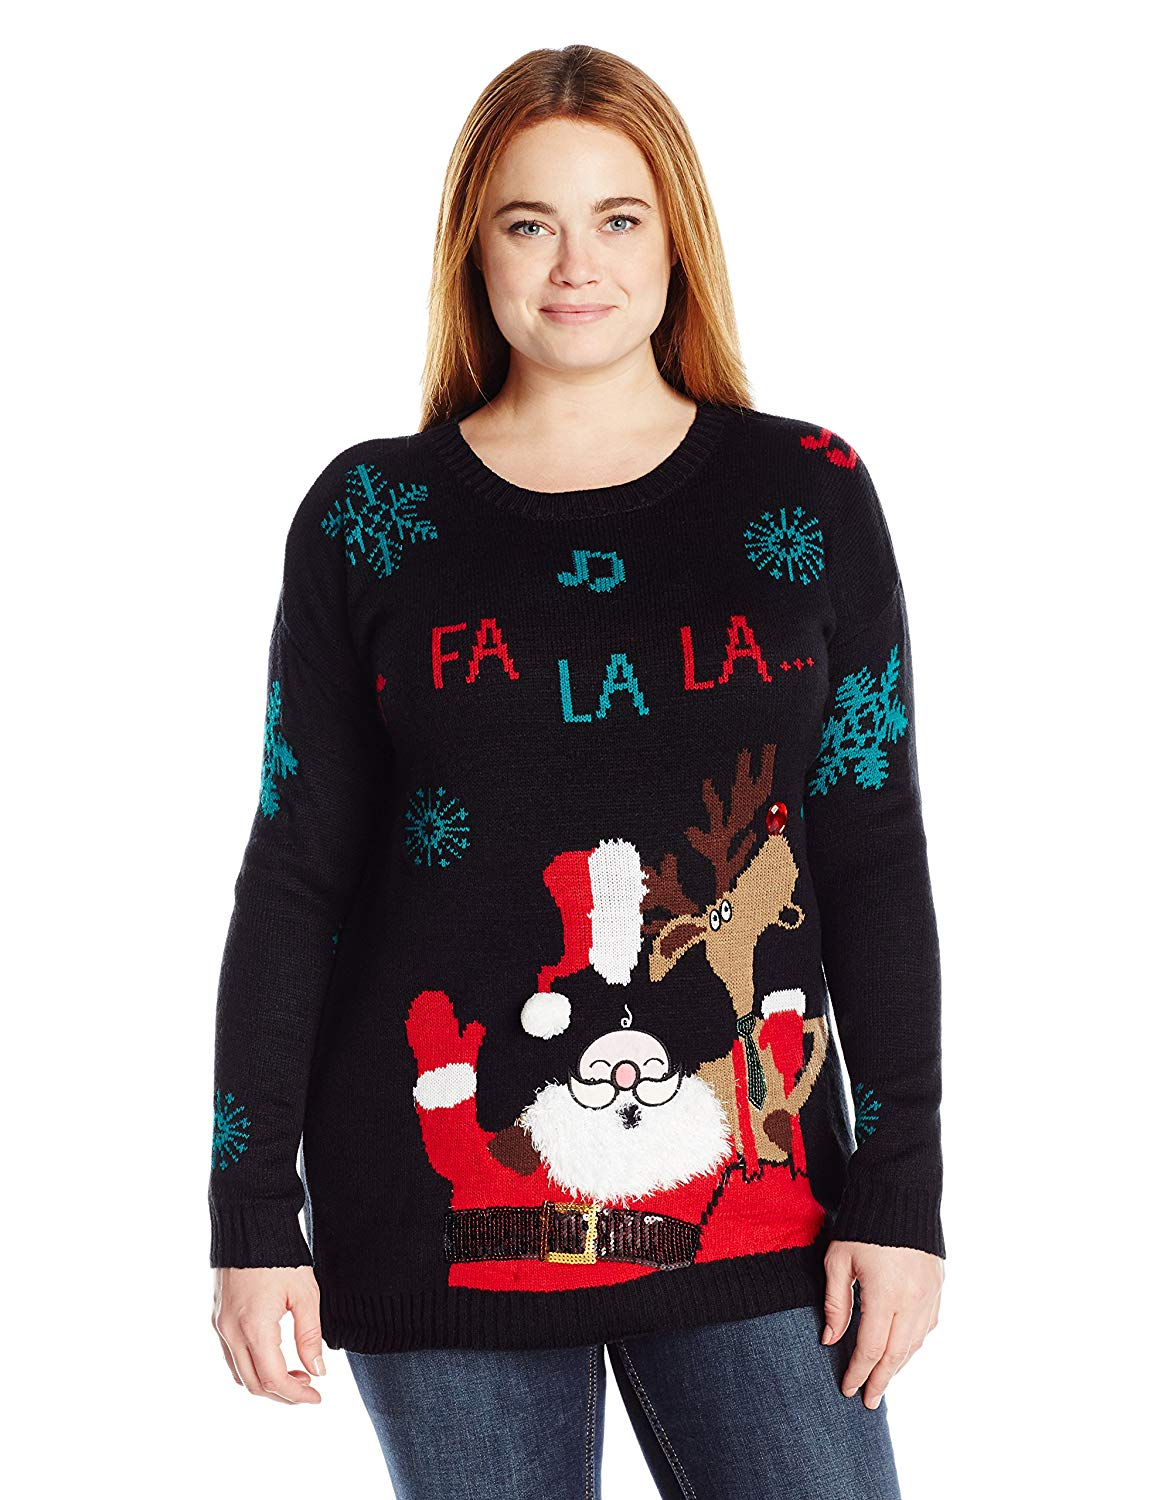 2be9b248f6e1 Get Quotations · Allison Brittney Women's Plus Size Santa and Reindeer  Singing Pullover Ugly Christmas Sweater